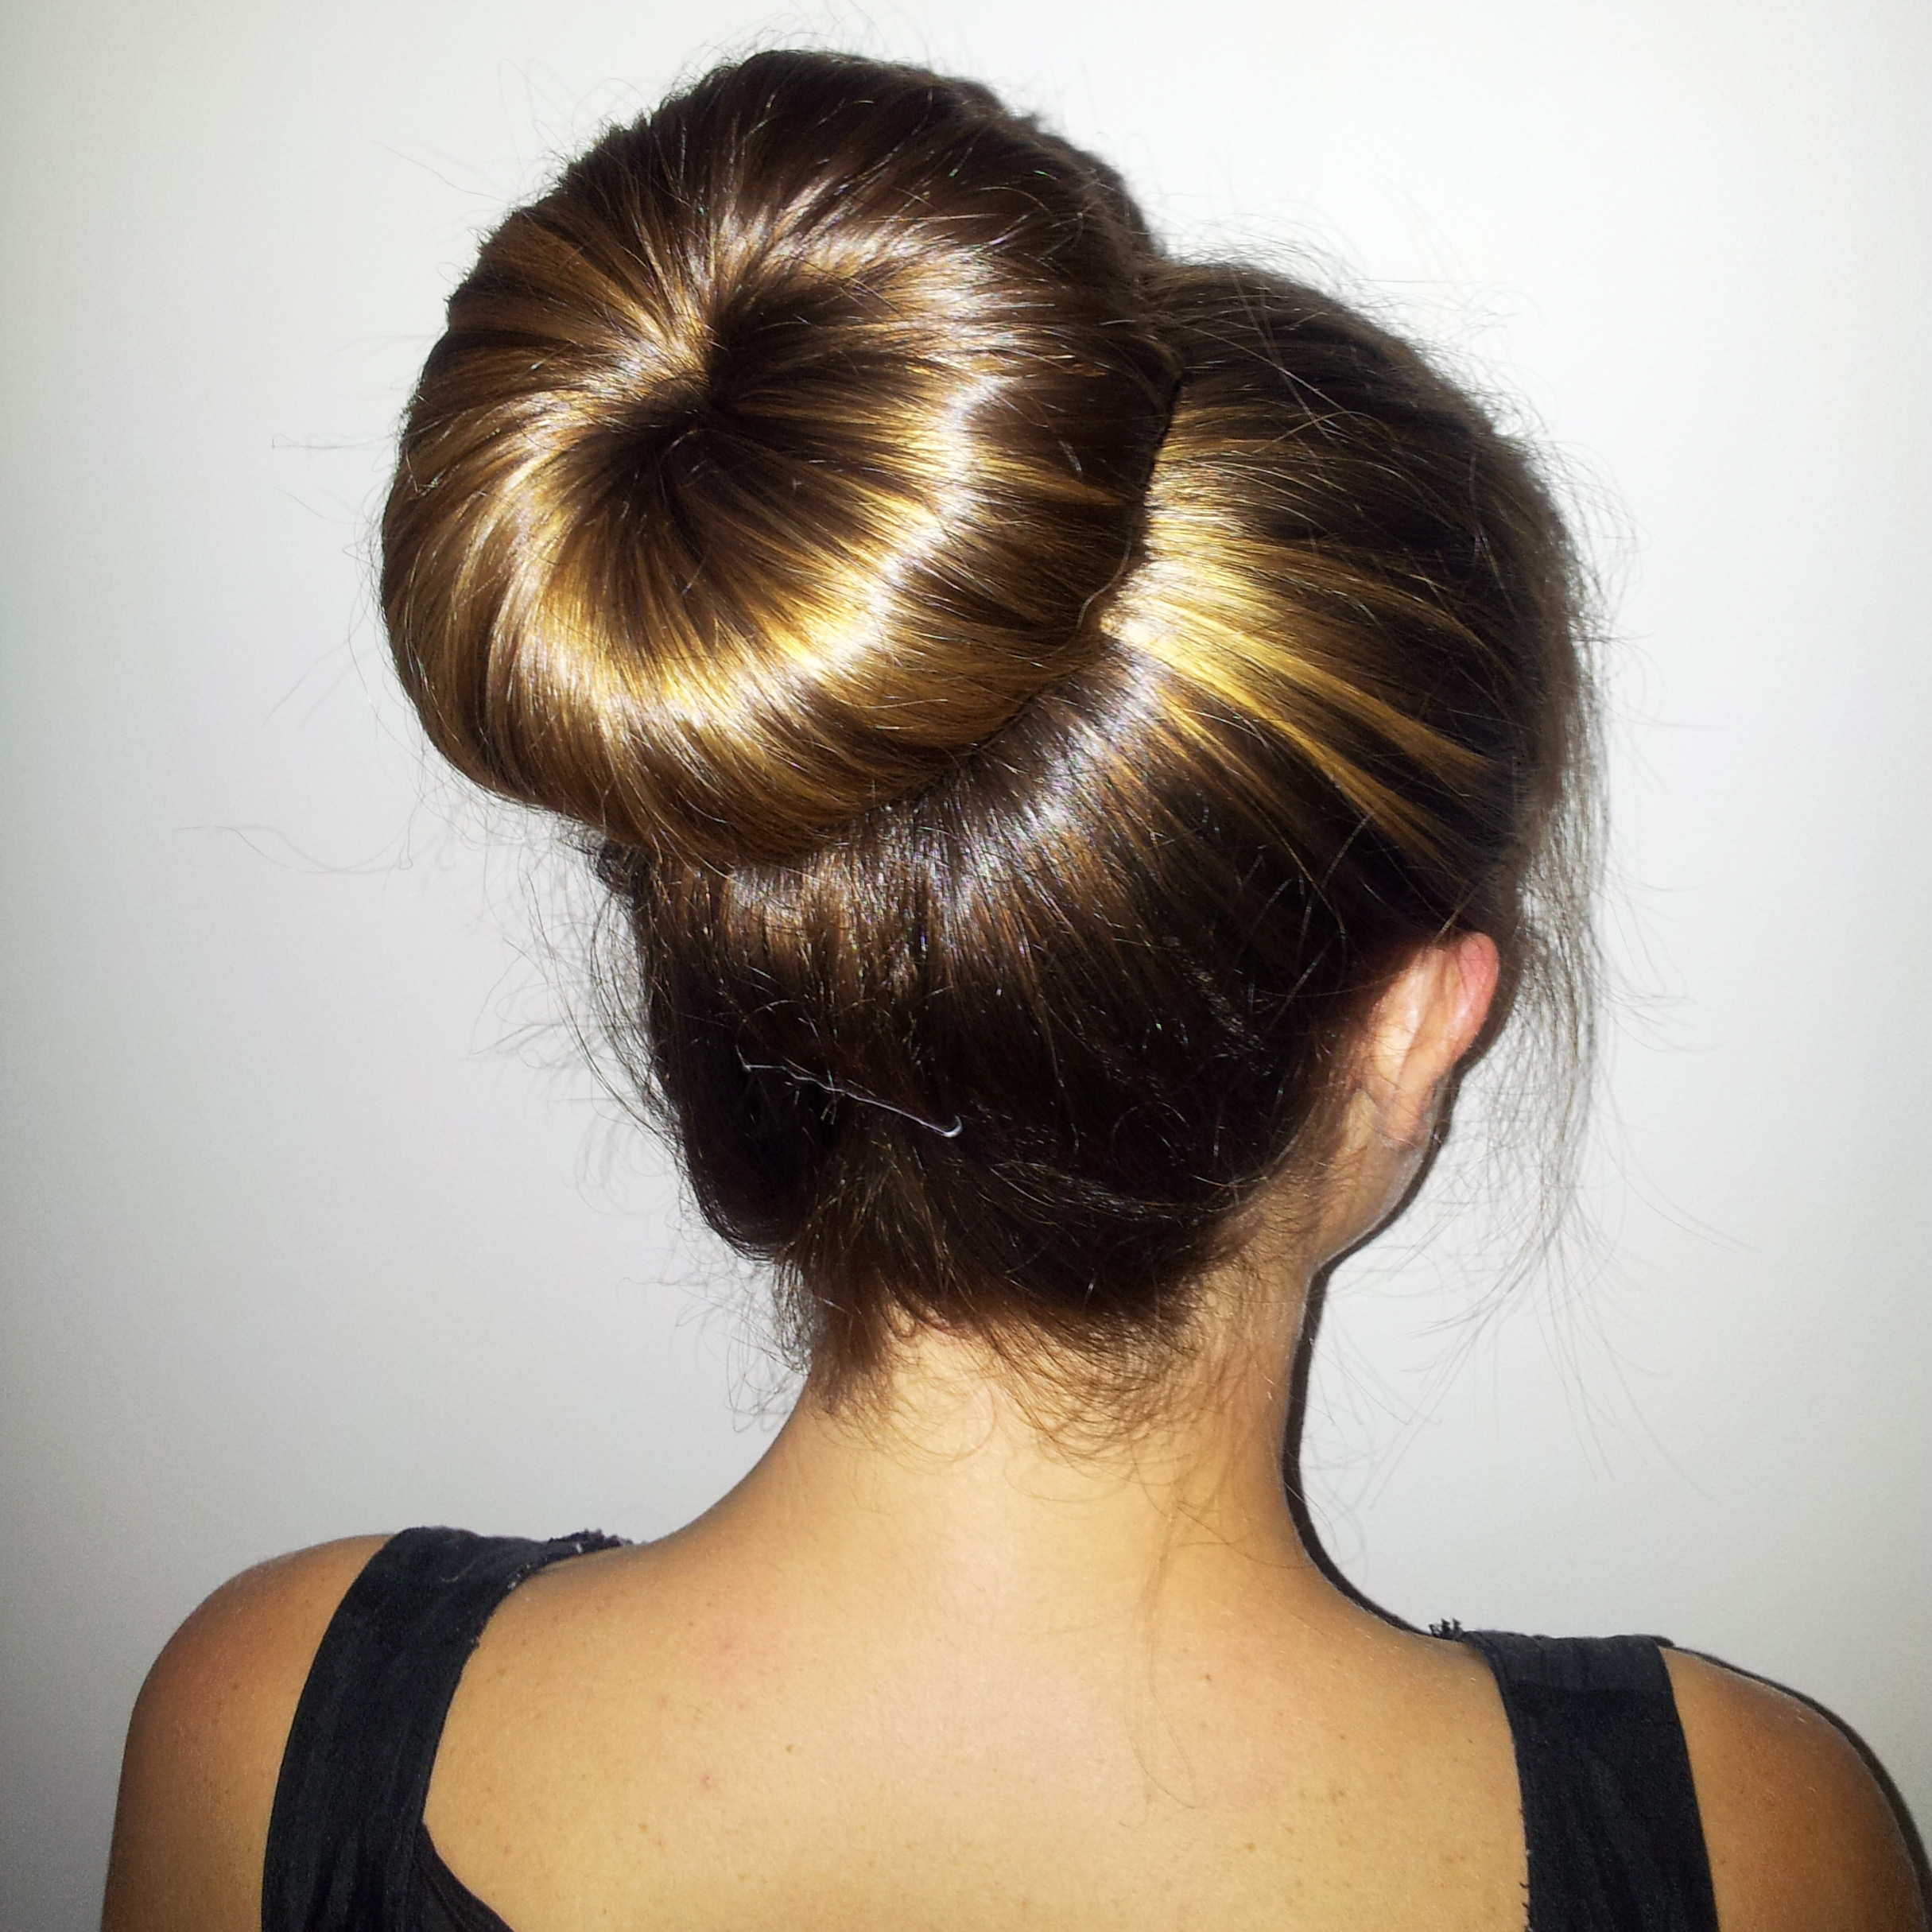 donut bun hairstyles with braids classy donut bun with braids Braids are everywhere surrounding us, and even in the simple bun updo there is room for plaiting one strand and wrapping it around the bun.